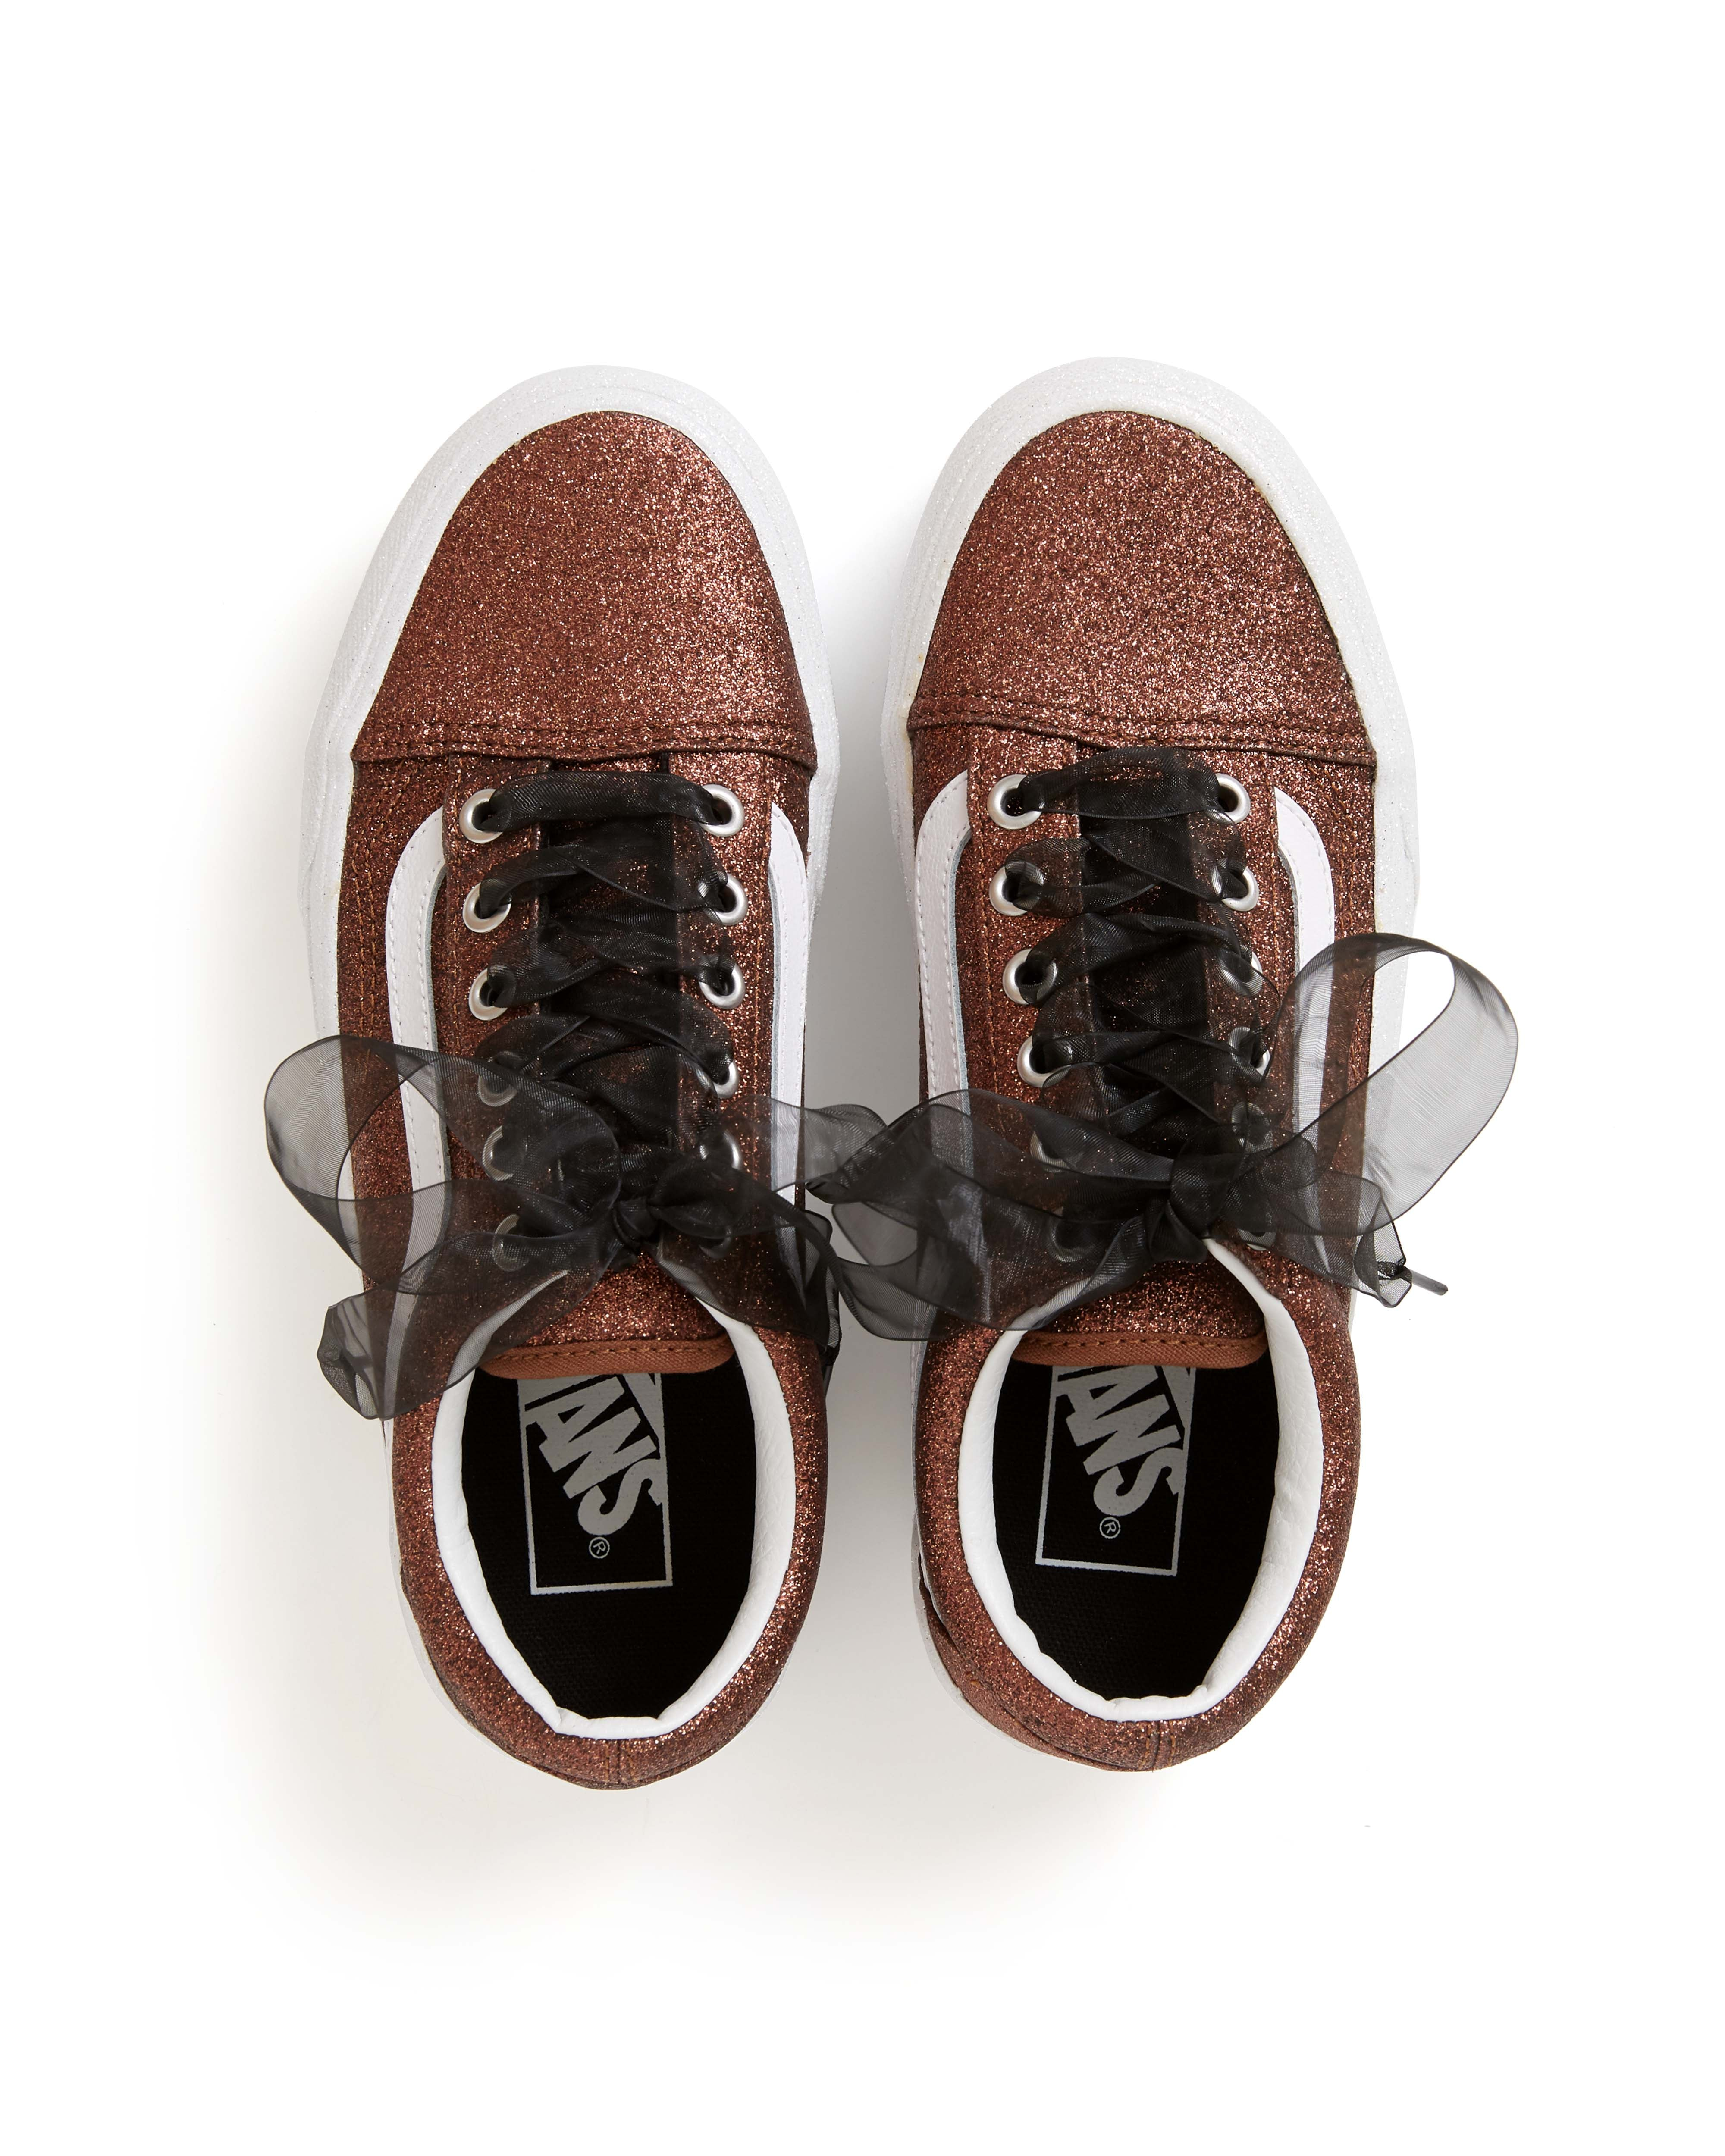 533ff4b193 Old Skool Platform - Bronze Glitter by vans - shoes - ban.do